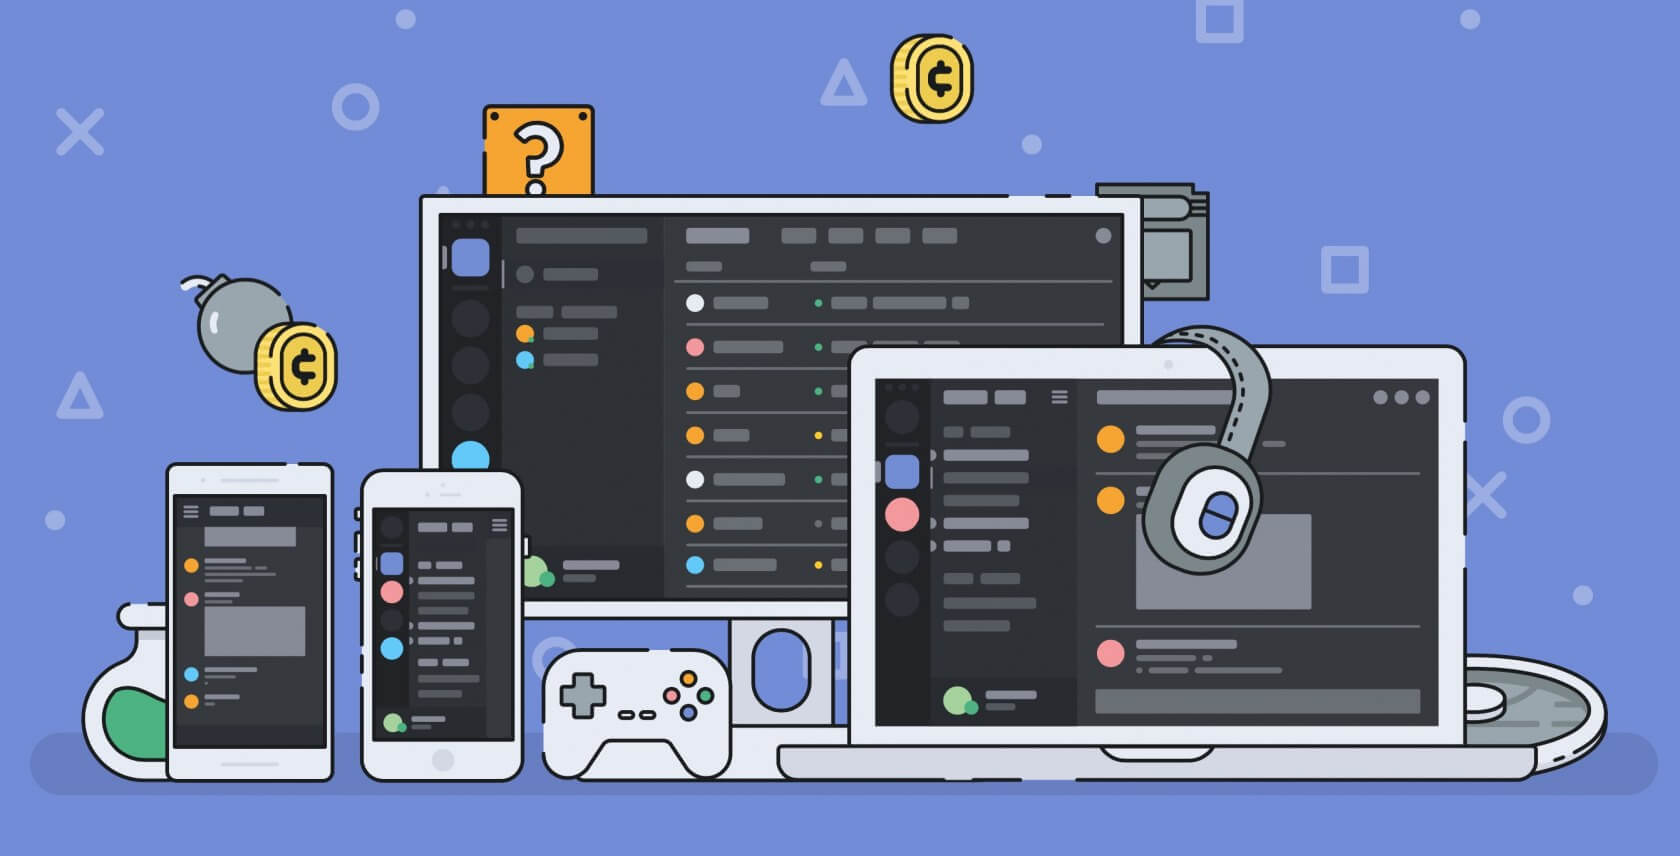 Discord's upcoming 'Go Live' feature will let you stream